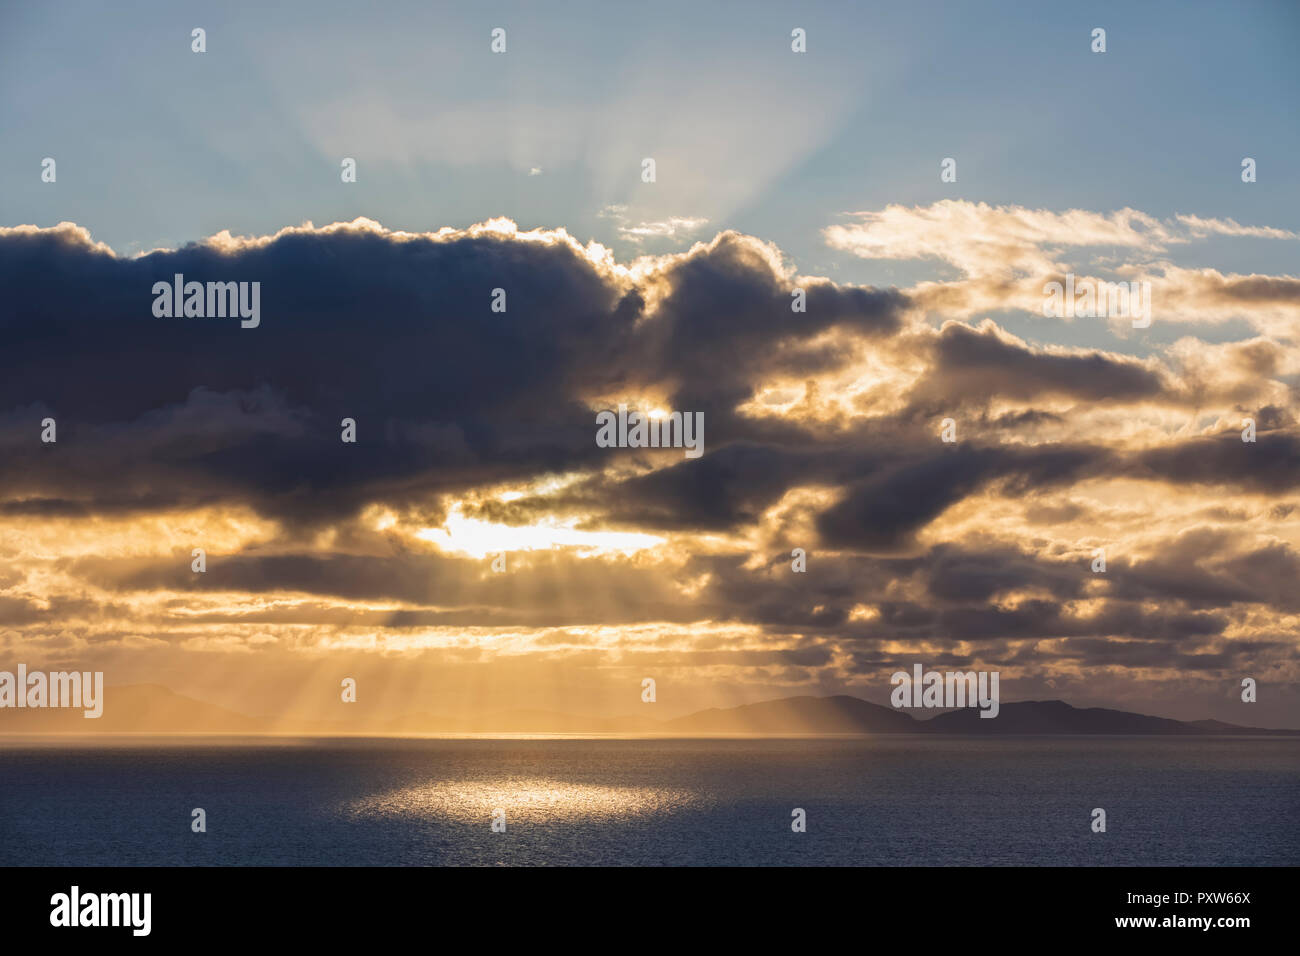 UK, Scotland, Inner Hebrides, Isle of Skye, cloudscape at sunset - Stock Image